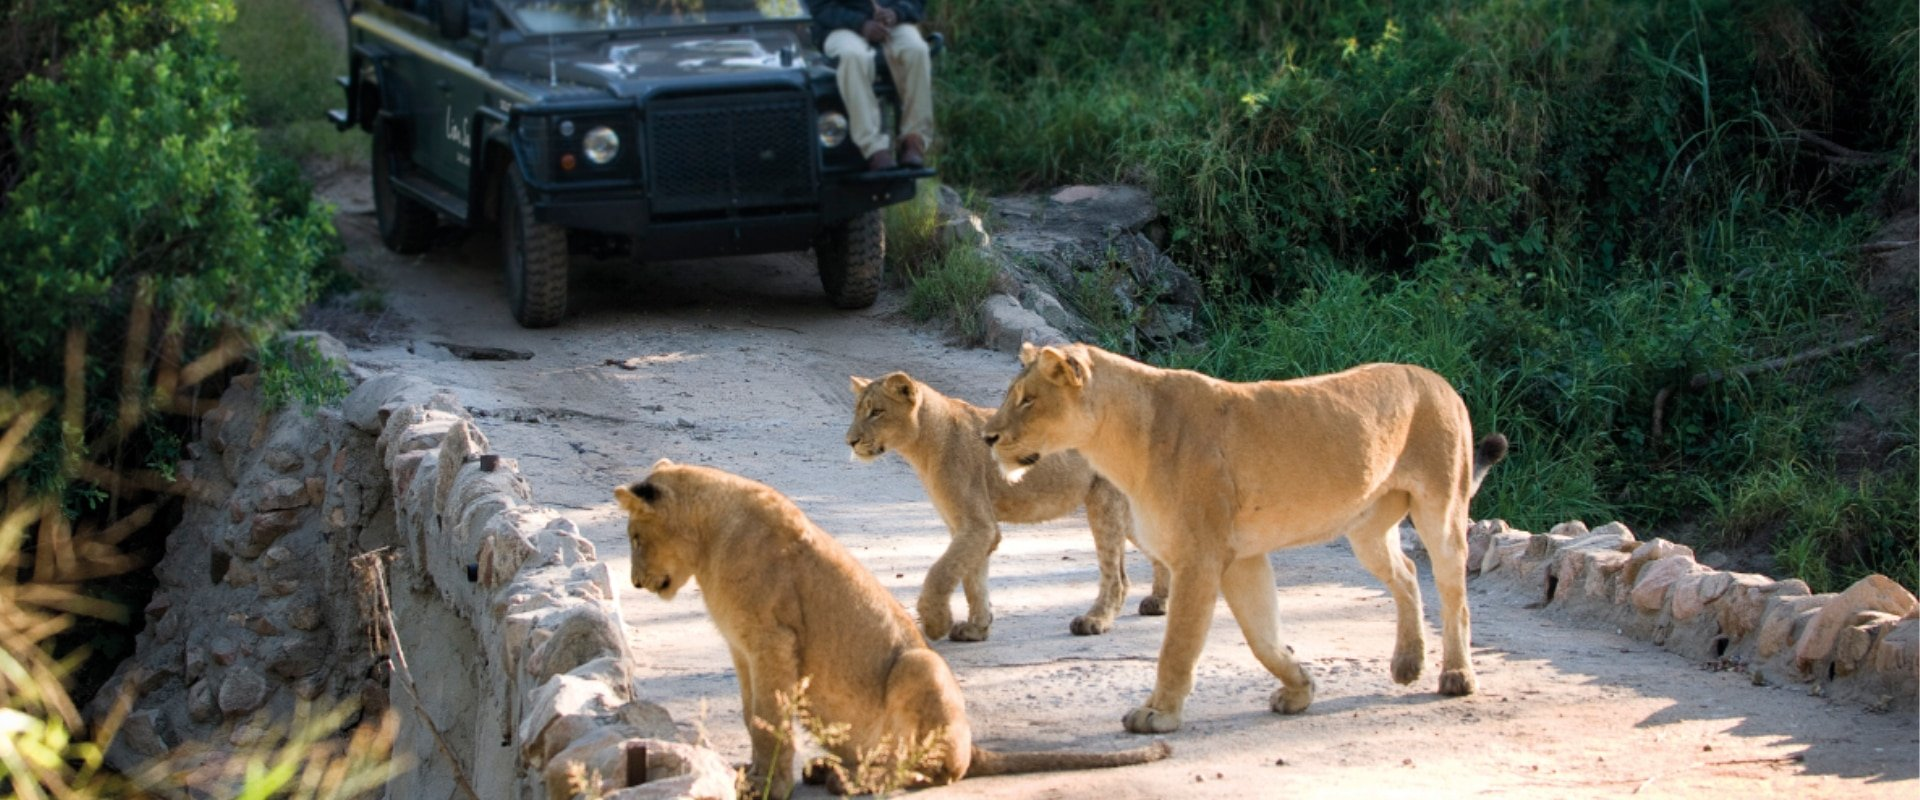 Witness the wildlife on an exciting Game Drive